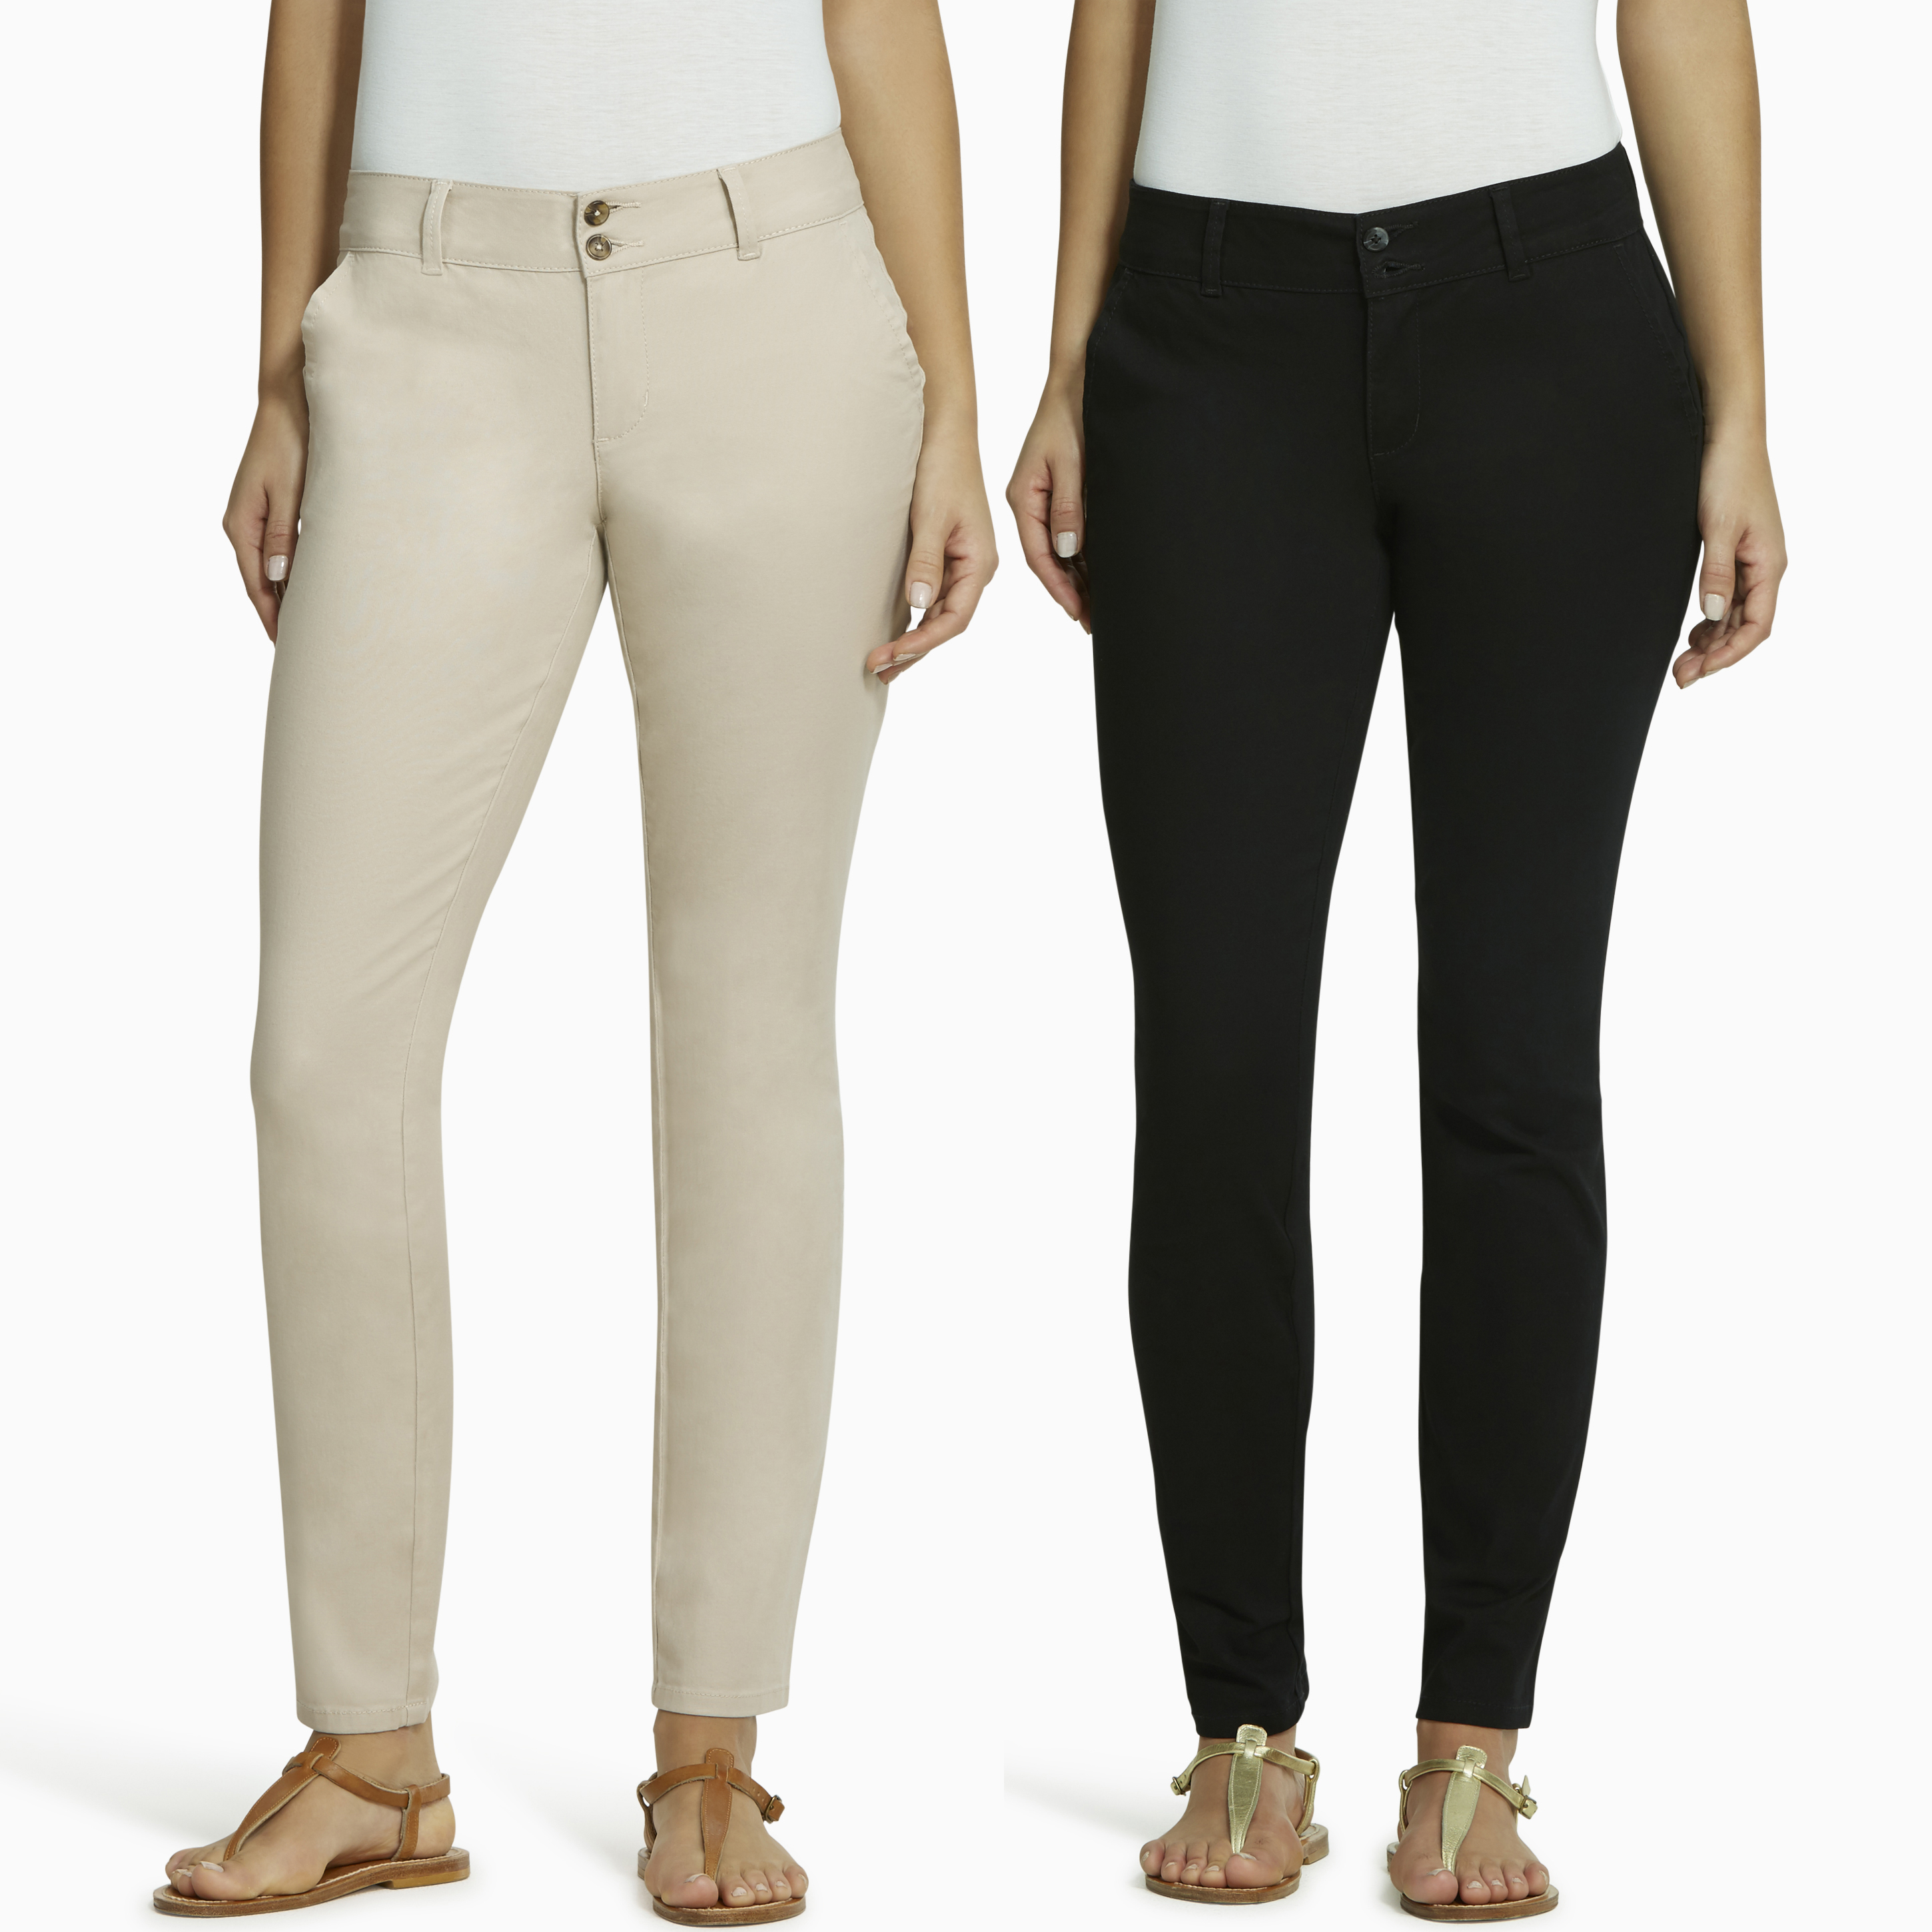 L.E.I. Juniors' Taylor Skinny Uniform Pant 2pk Value Bundle